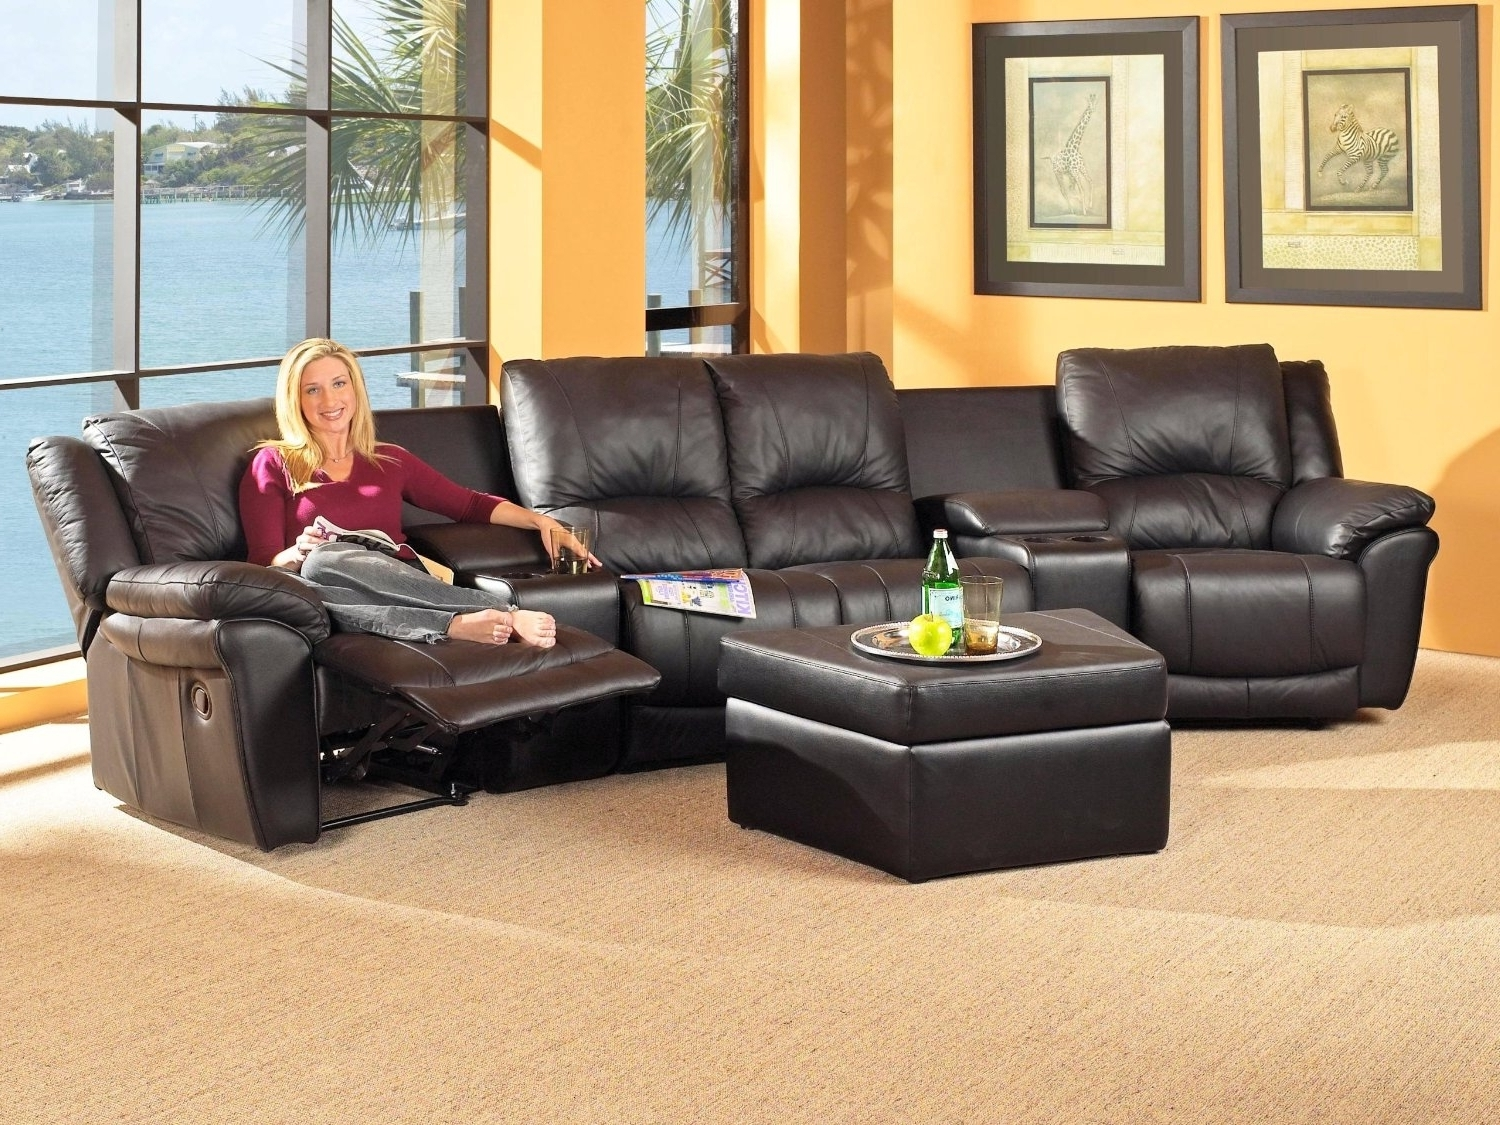 2018 Rochester Ny Sectional Sofas For Collection Sectional Sofas Rochester Ny – Mediasupload (View 6 of 20)